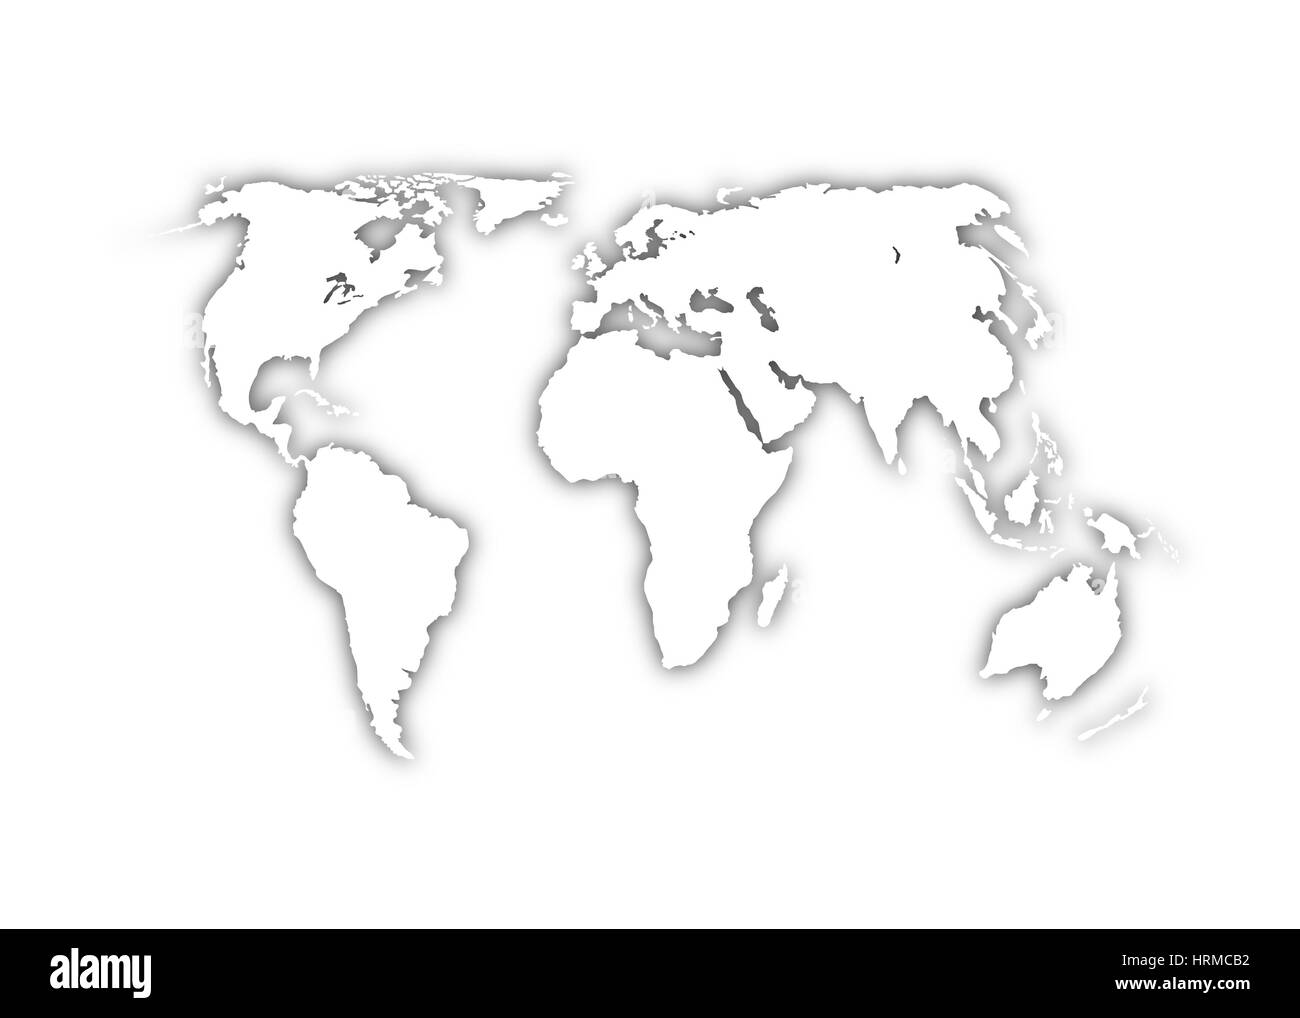 World map on grey background stock photo 135058422 alamy world map on grey background gumiabroncs Image collections